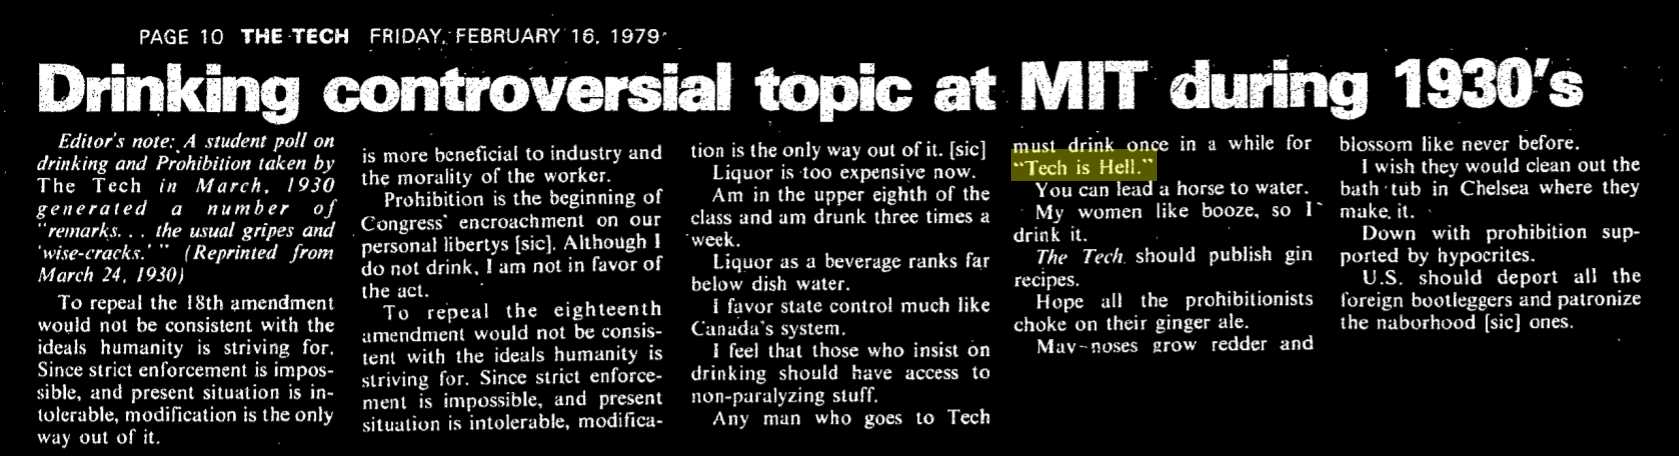 """article titled """"Drinking controversial topic at MIT during 1930s"""", reprinted from the 1930s. """"Any man who goes to Tech must drink once in a while for Tech is Hell."""""""